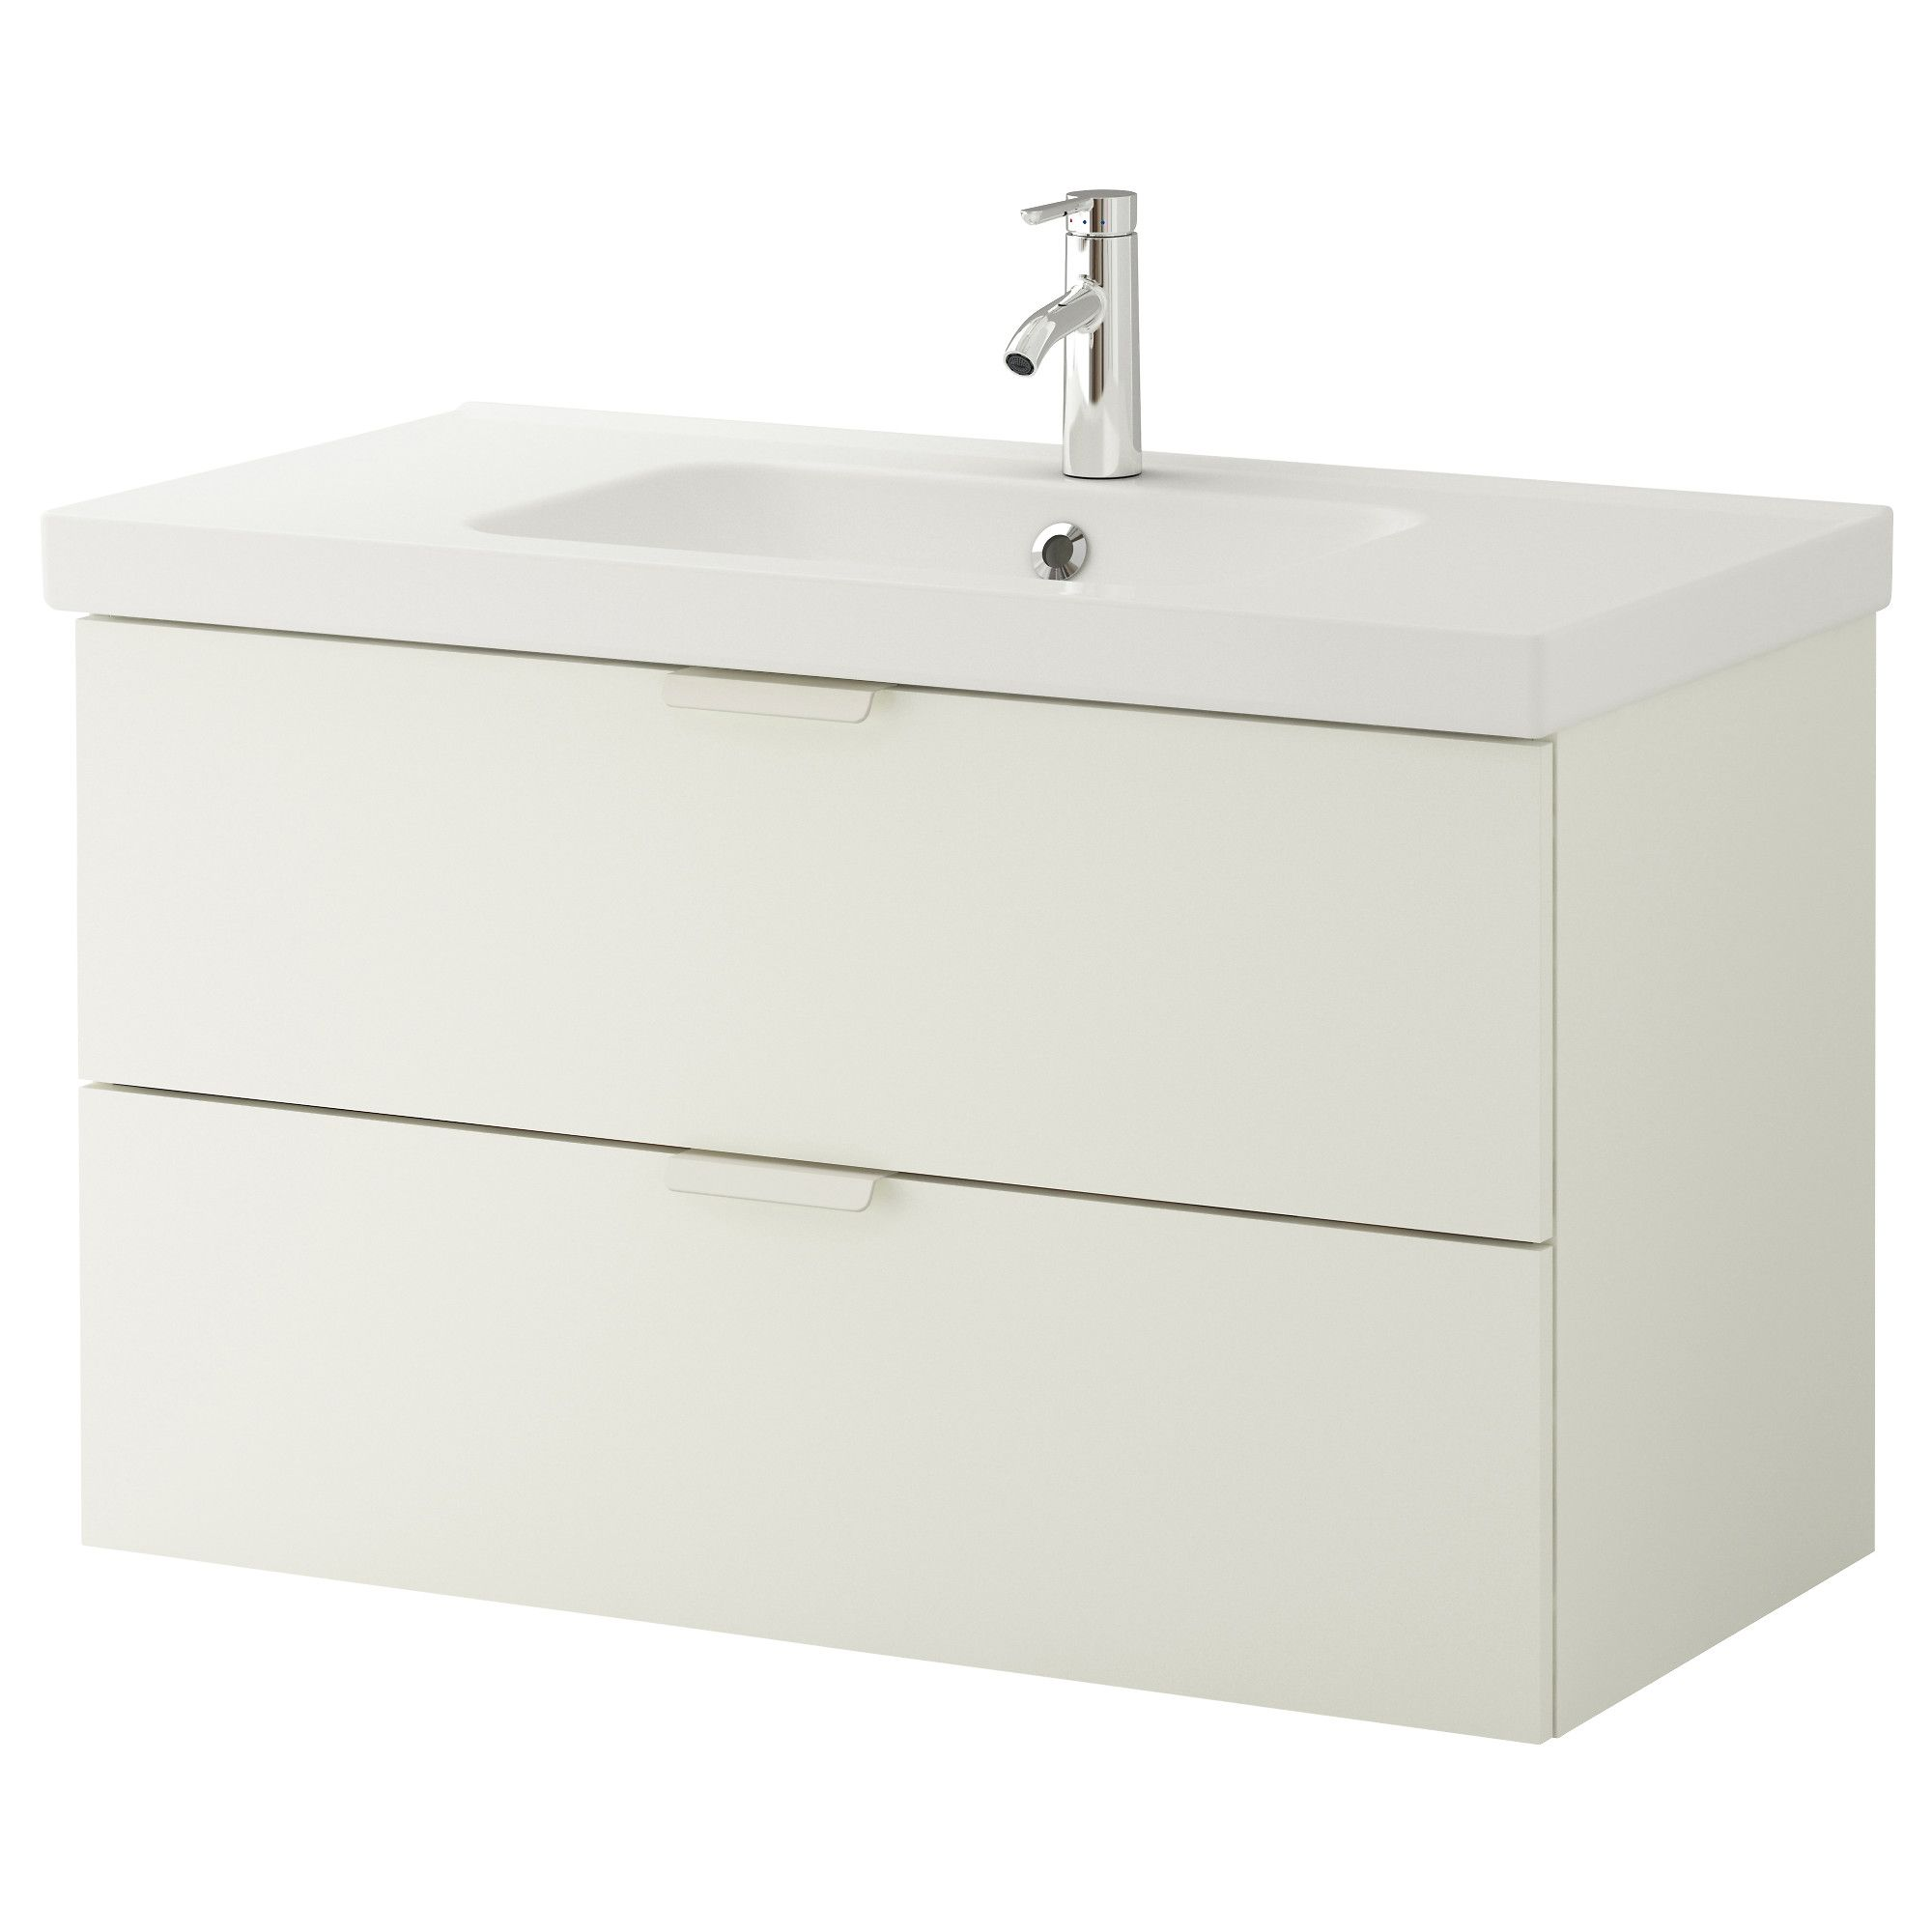 GODMORGON / ODENSVIK Sink cabinet with 2 drawers - white, 100x49x64 ...